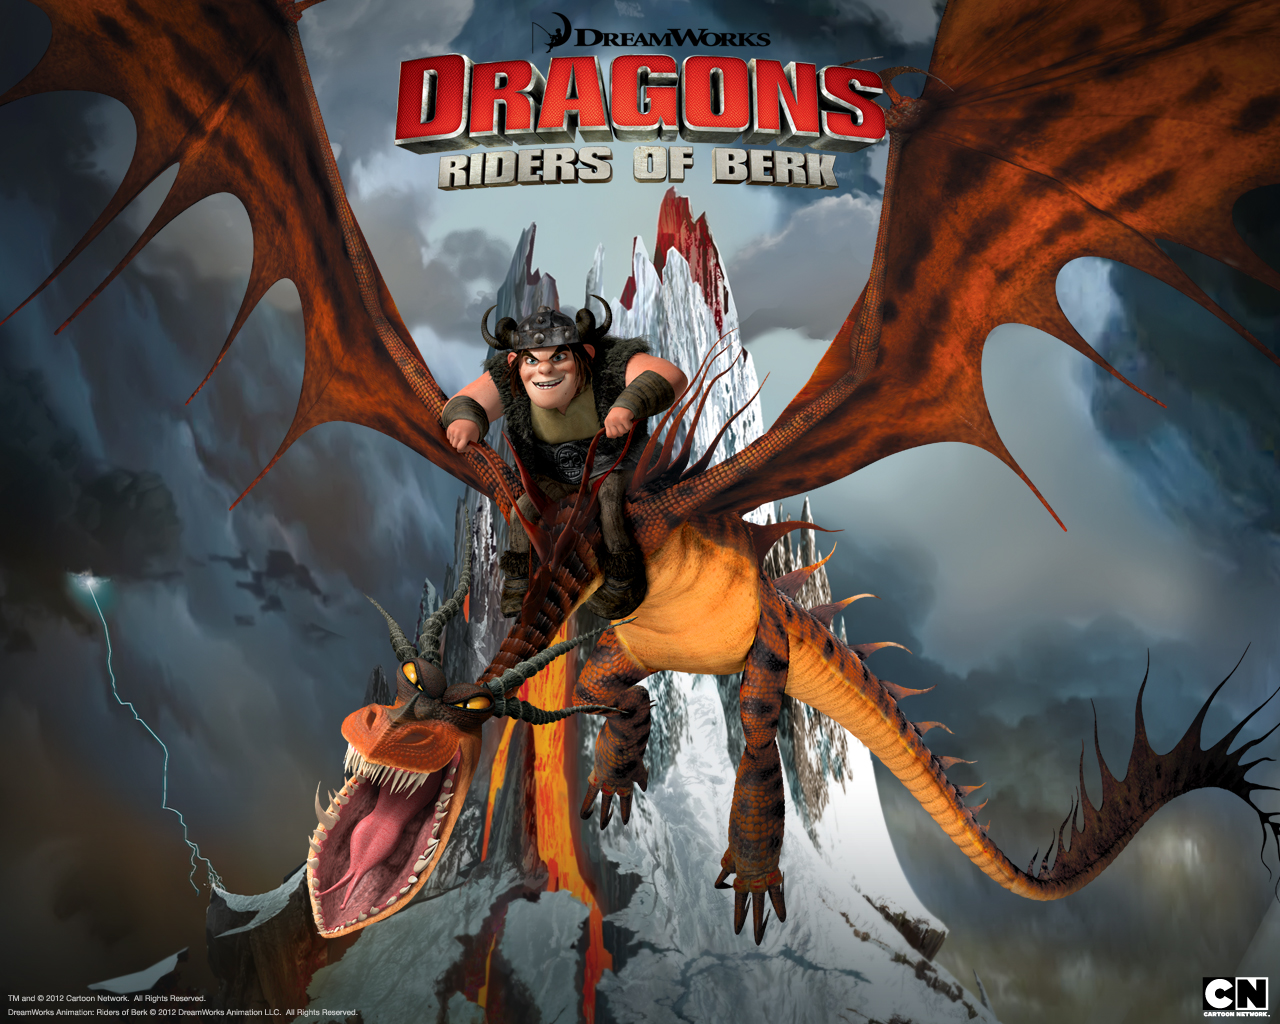 Snotlout and hookfang from how to train your dragon riders of berk snotlout and hookfang from how to train your dragon riders of berk wallpaper click picture for high resolution hd wallpaper ccuart Choice Image